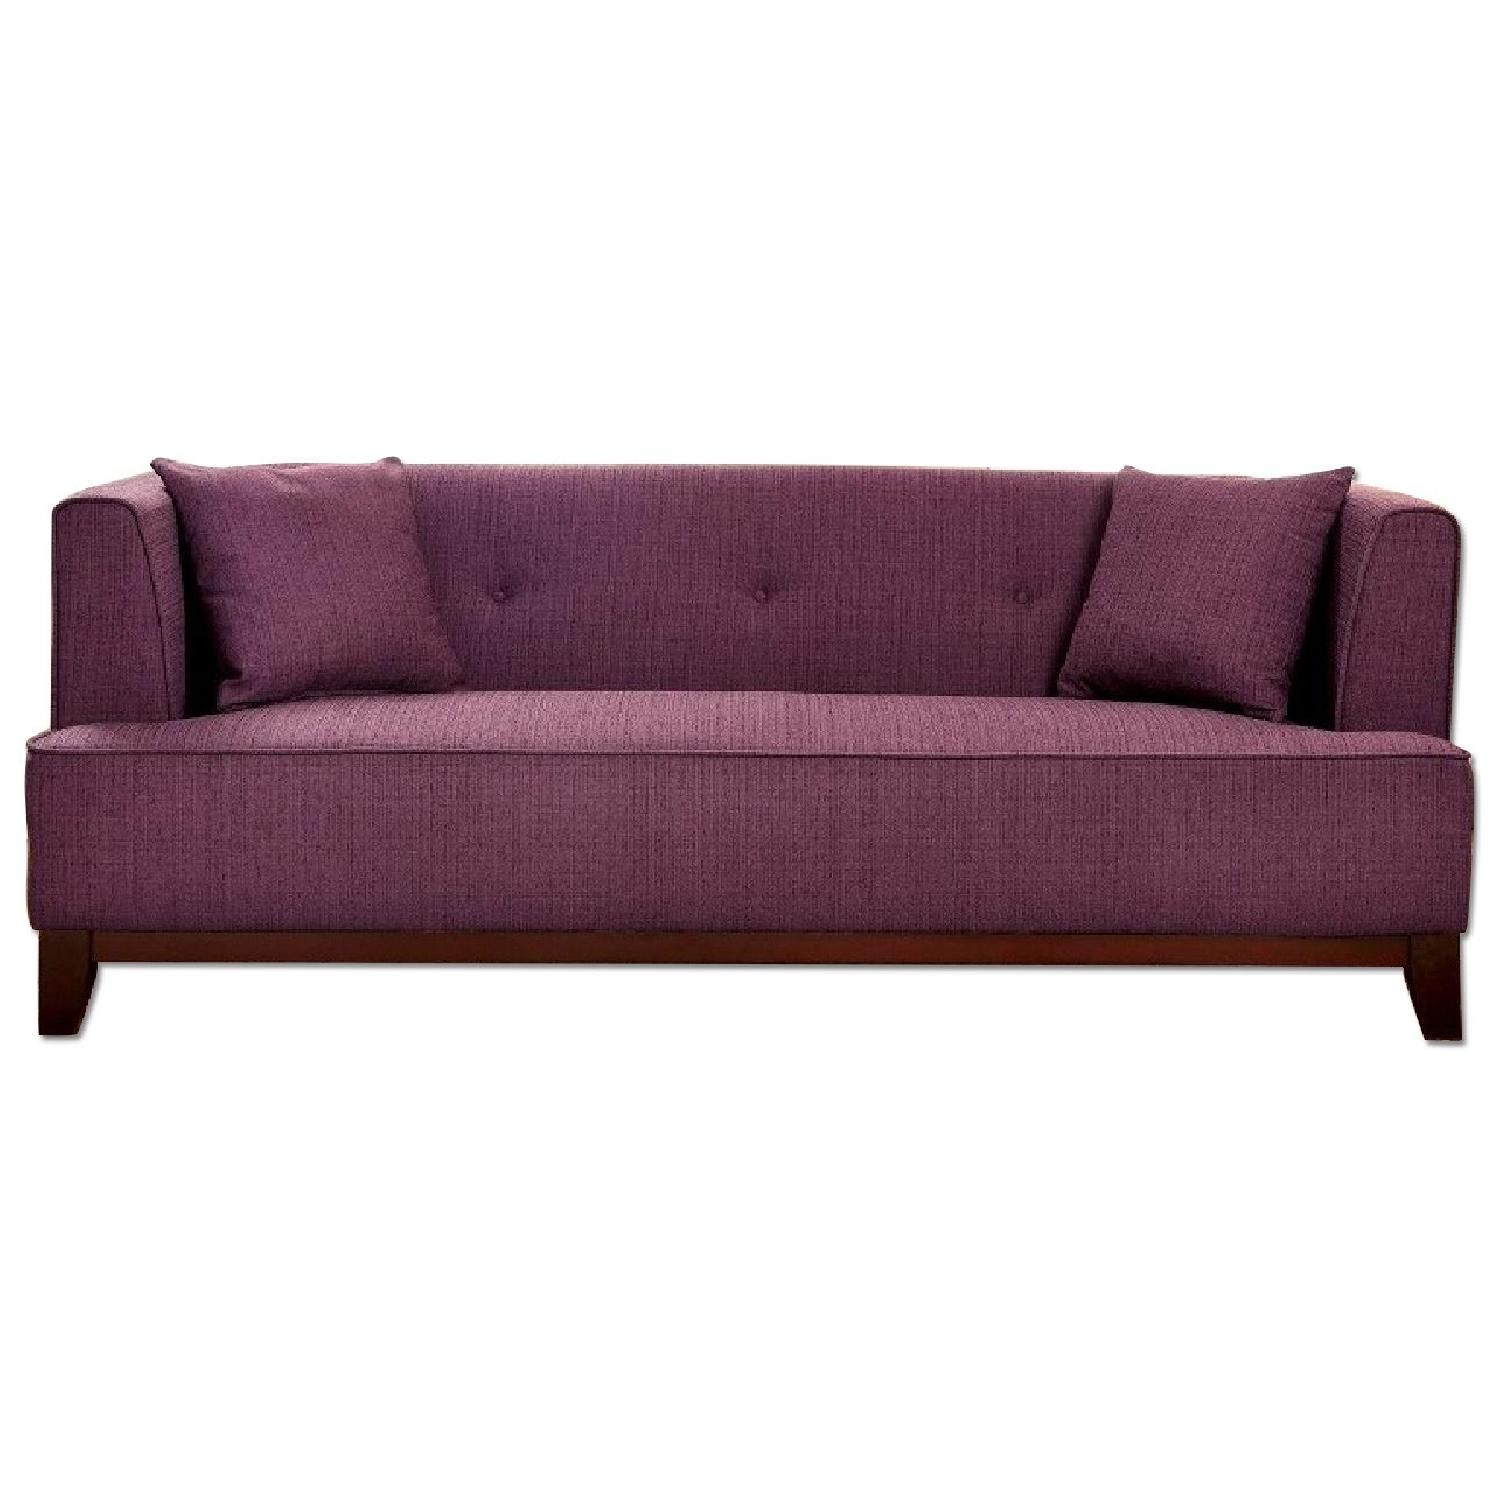 Furniture of America Sofia Purple Sofa Sofas